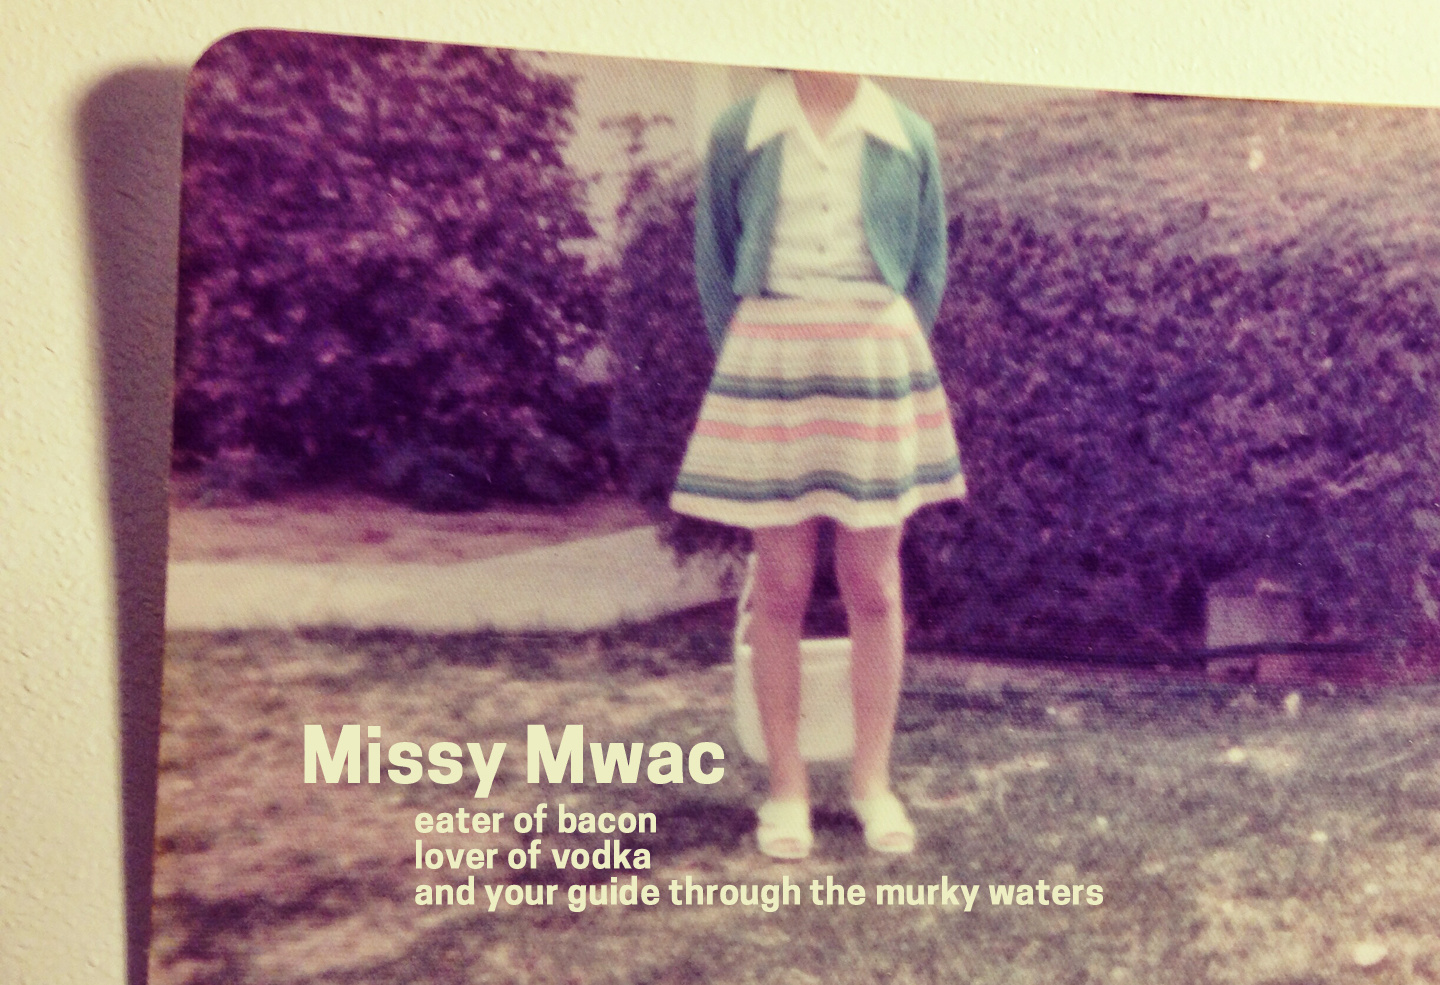 Missy Mwac